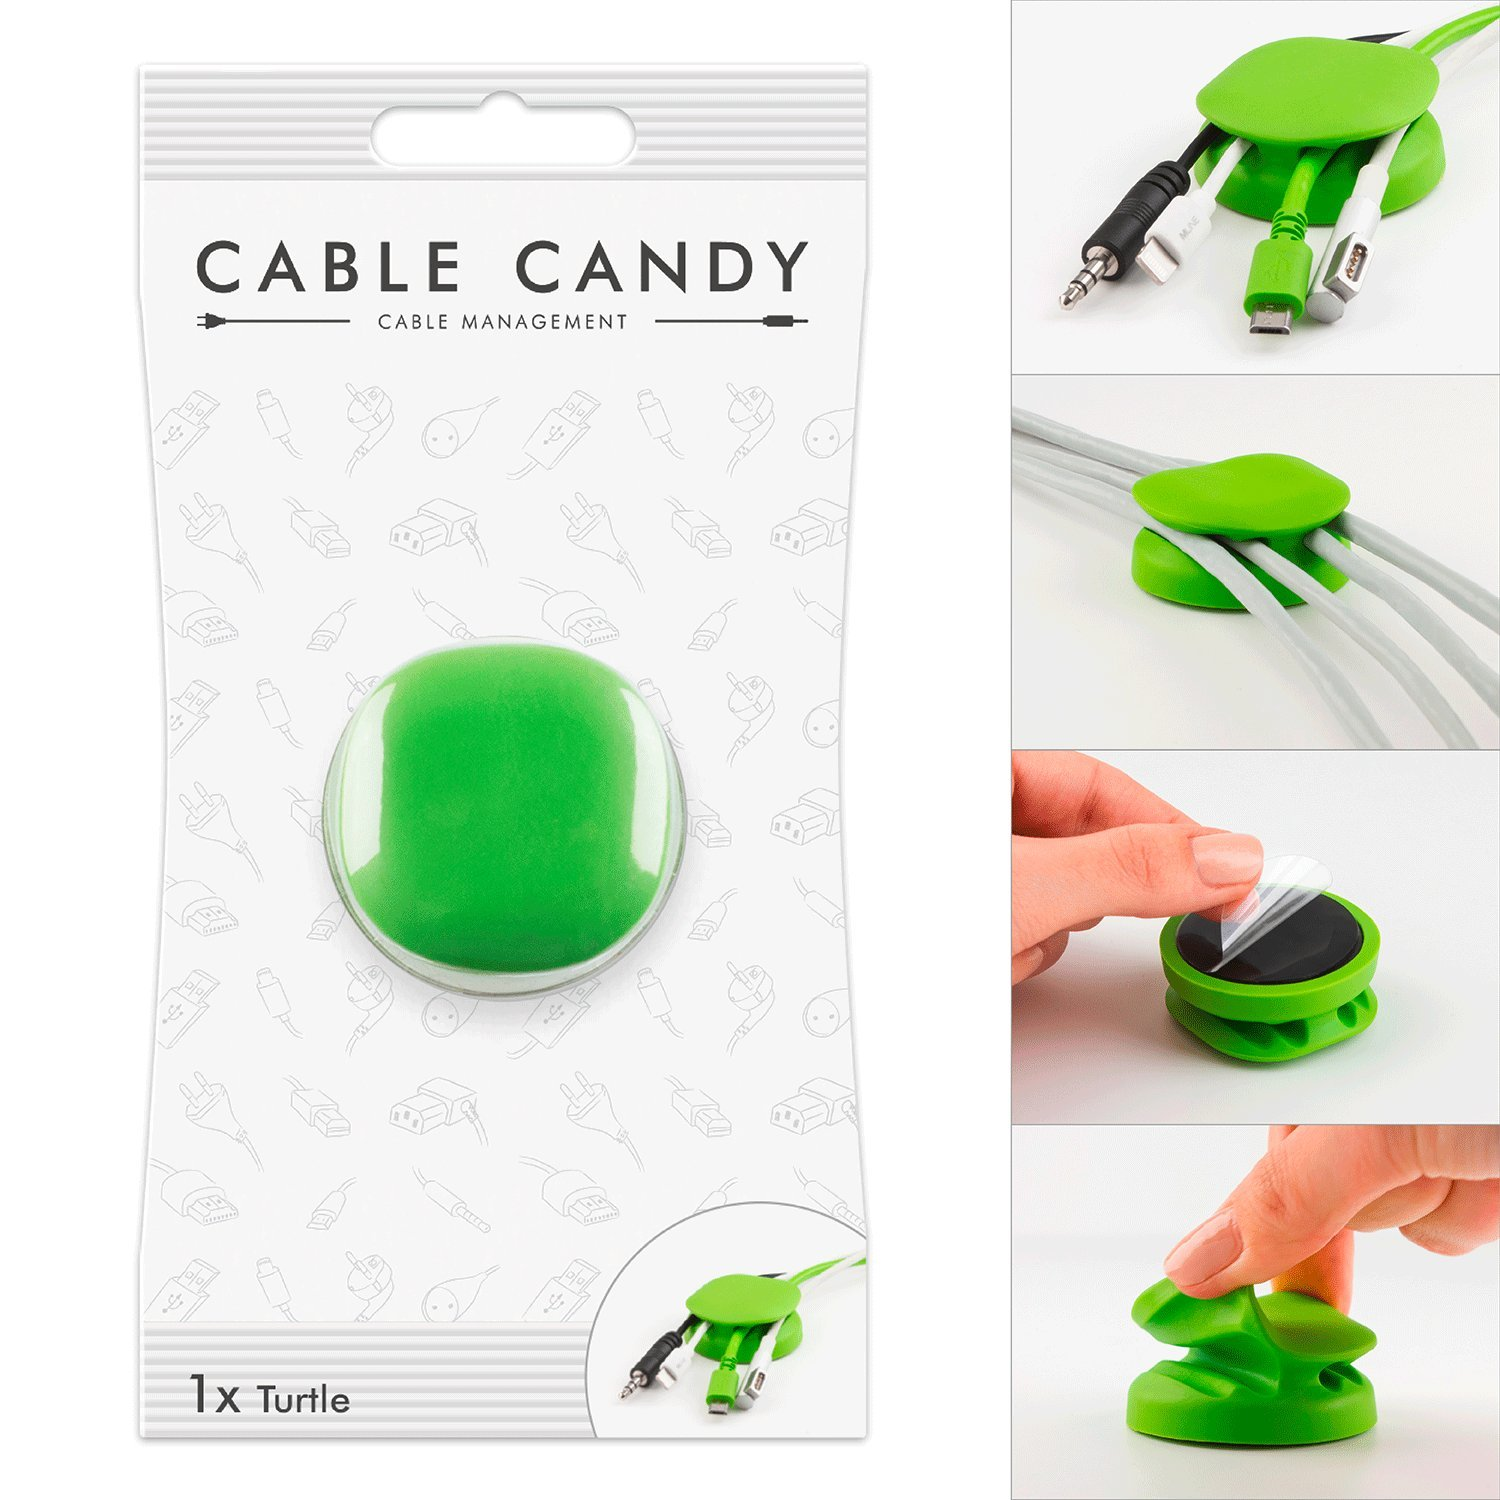 Cord Management & Cable Organizer - Cable Candy - Turtle Green MLINE MLC7642